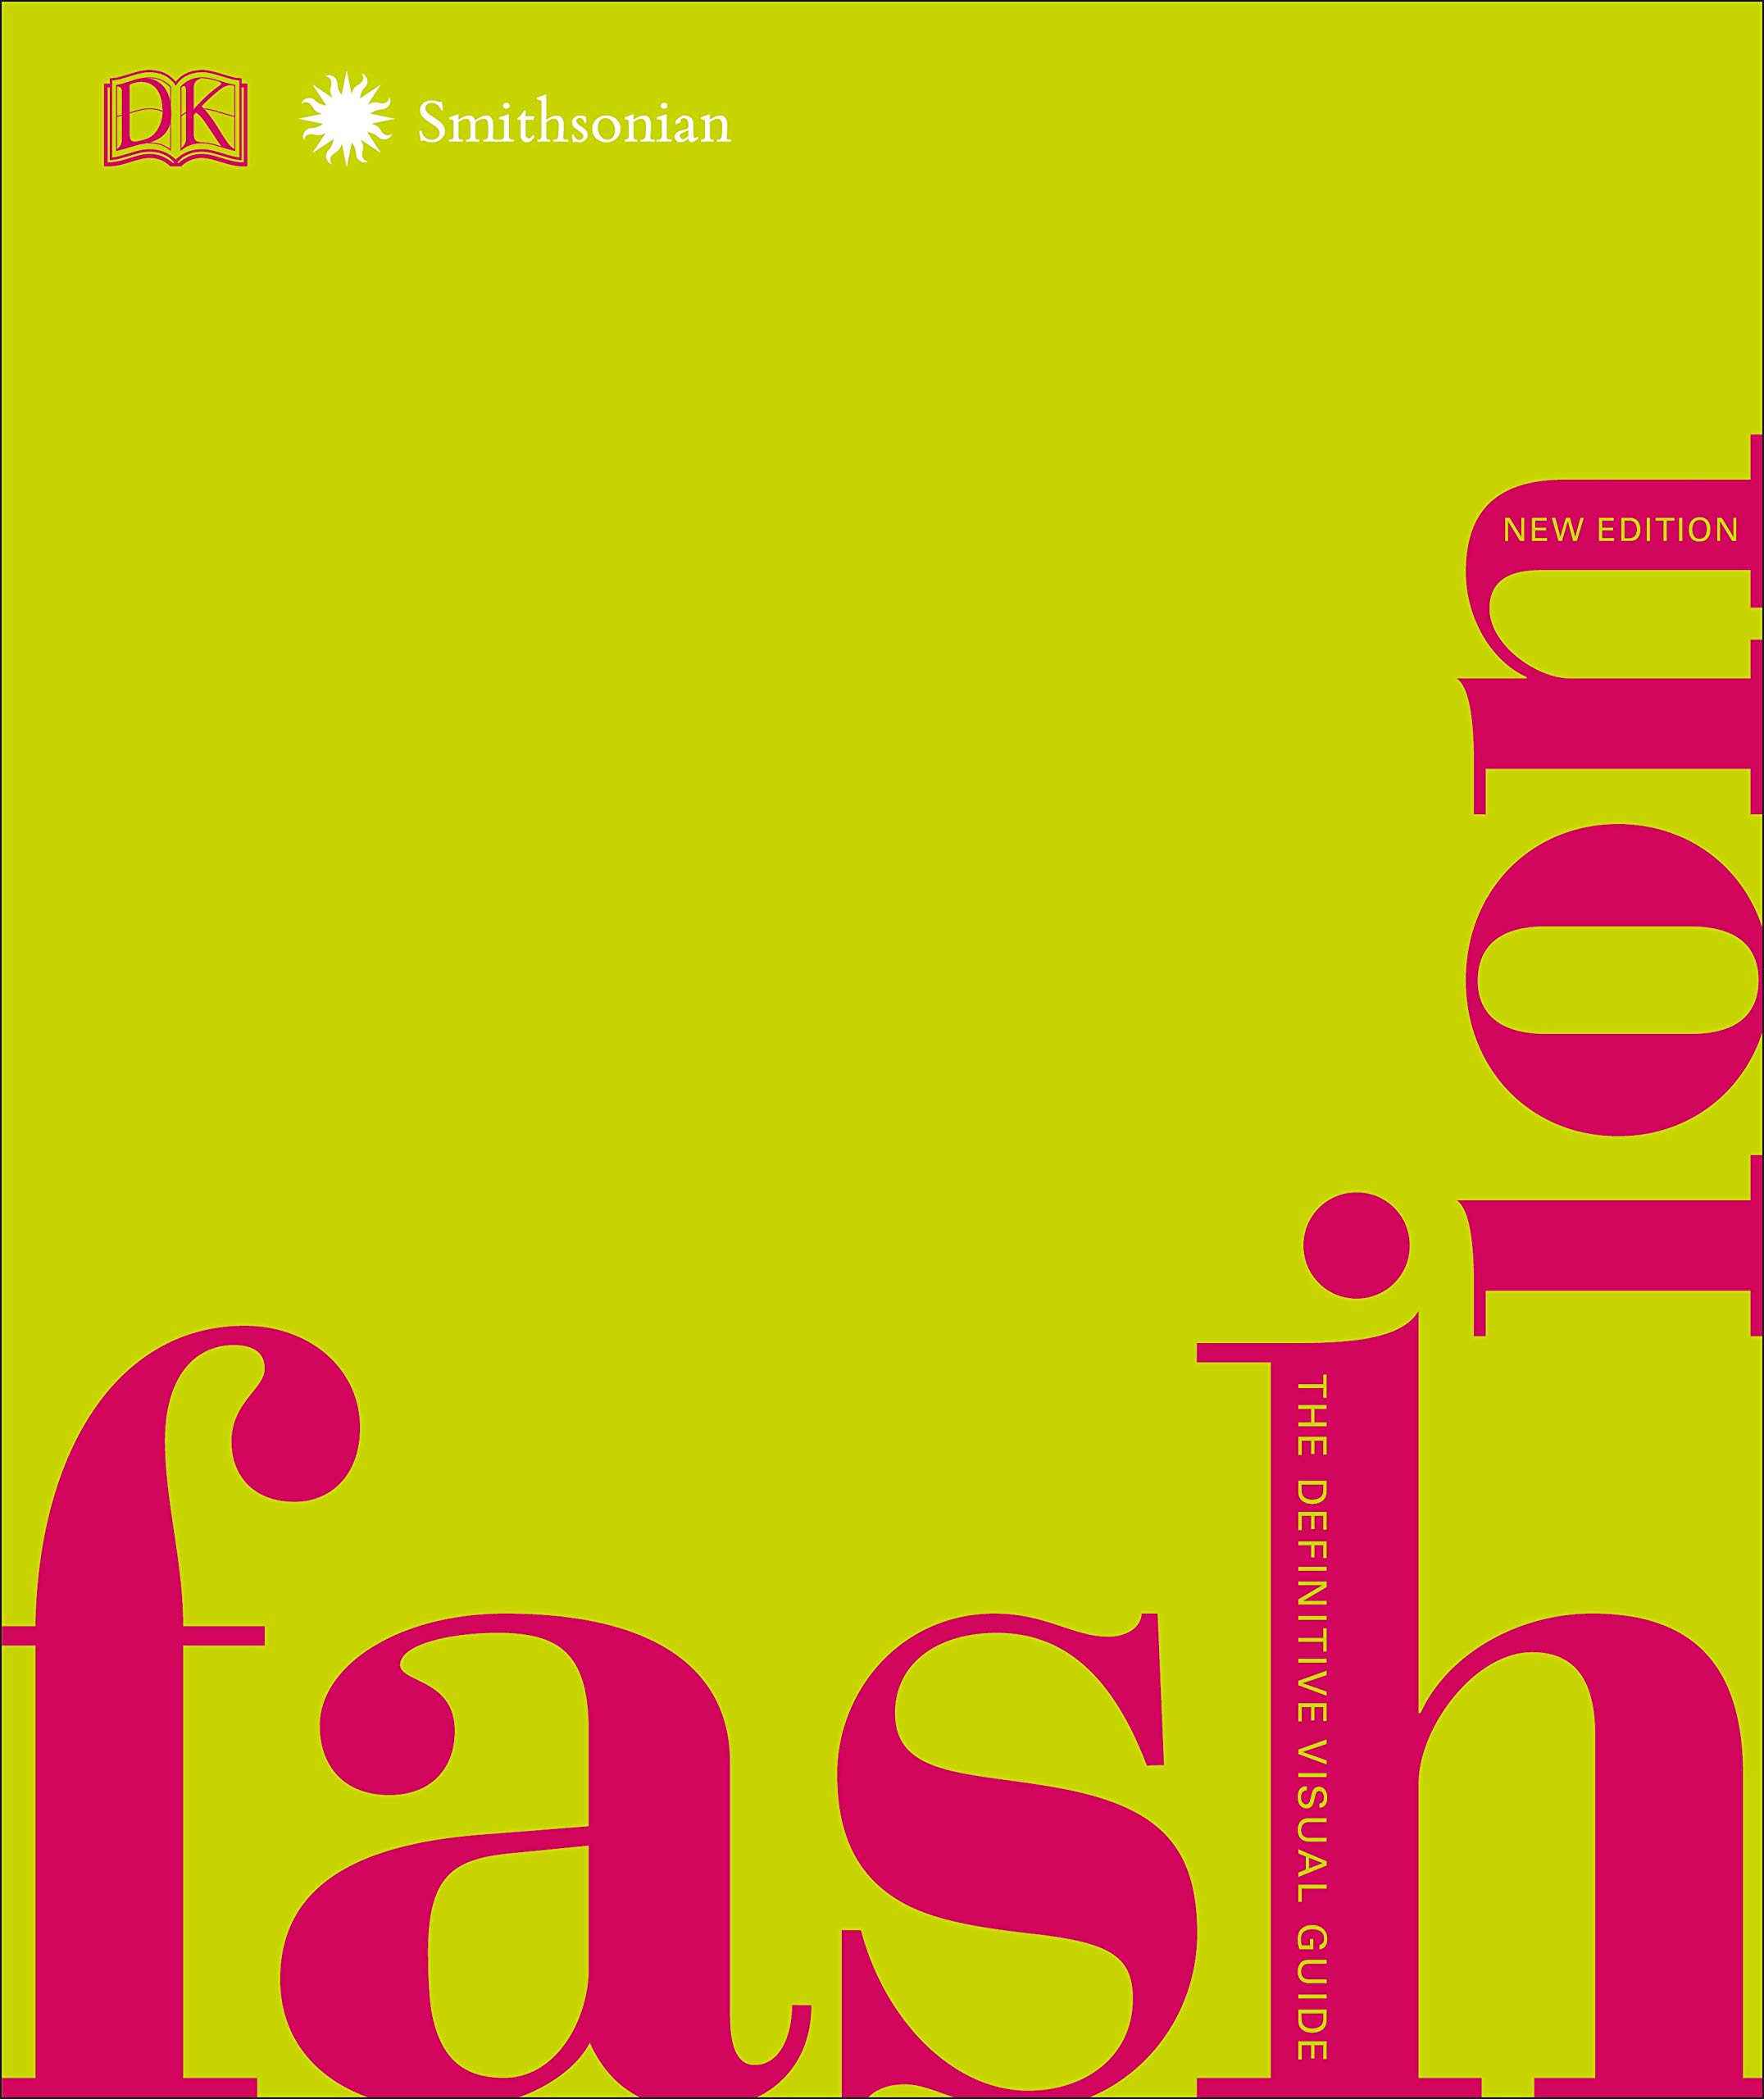 7fb116bd25 Fashion, New Edition: The Definitive Visual Guide: DK: 9781465486400 ...